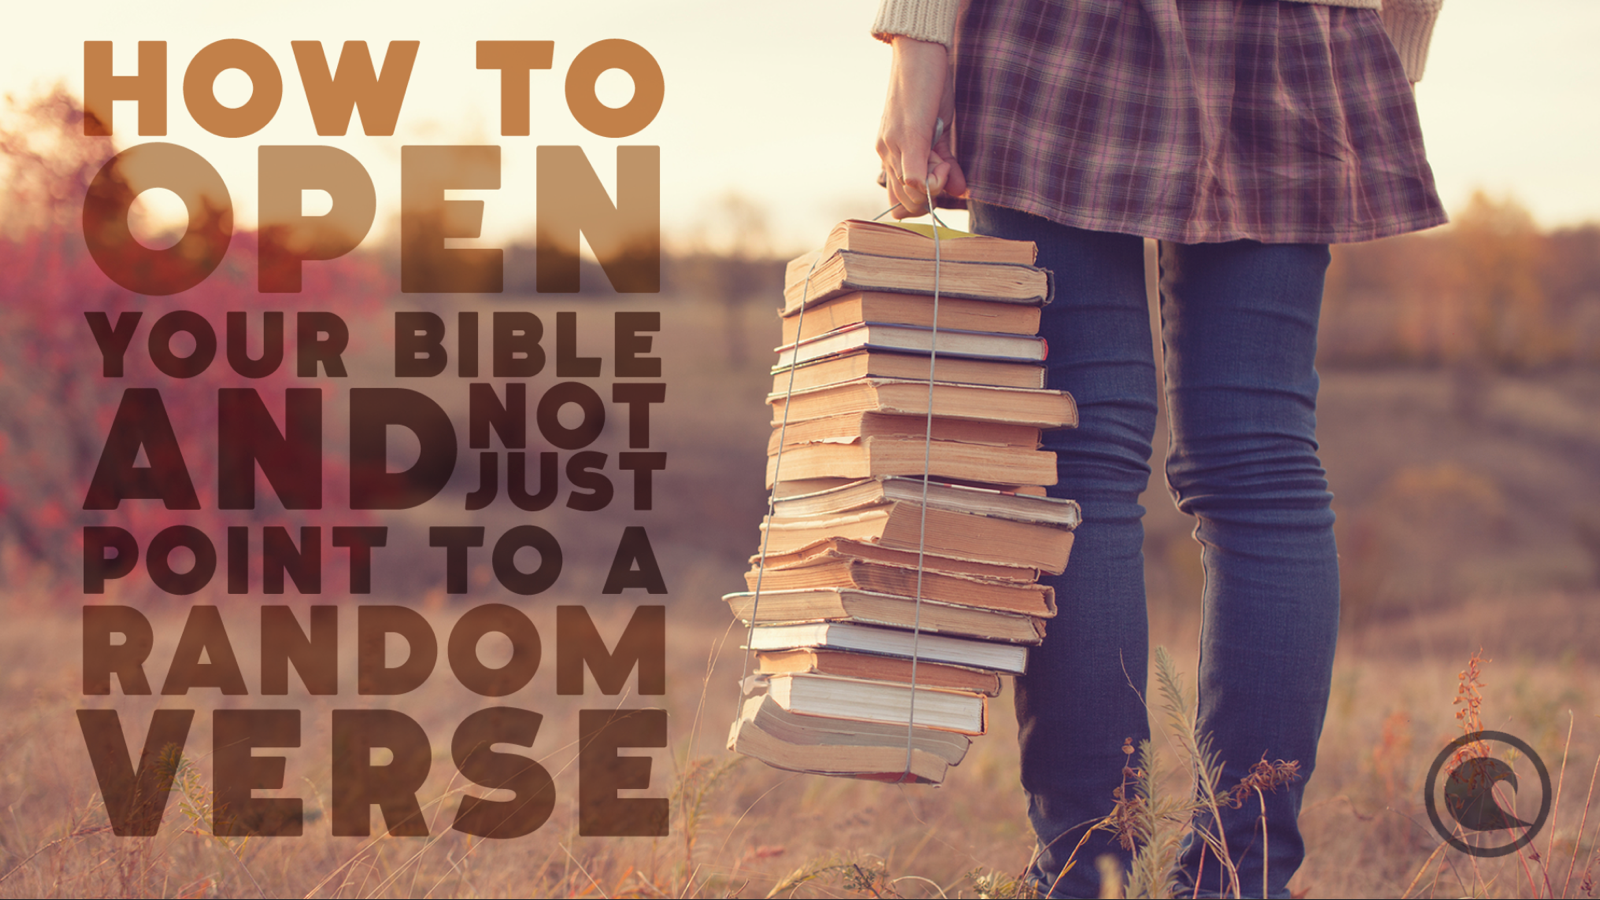 How To Open Your Bible And Not Just Point To A Random Verse